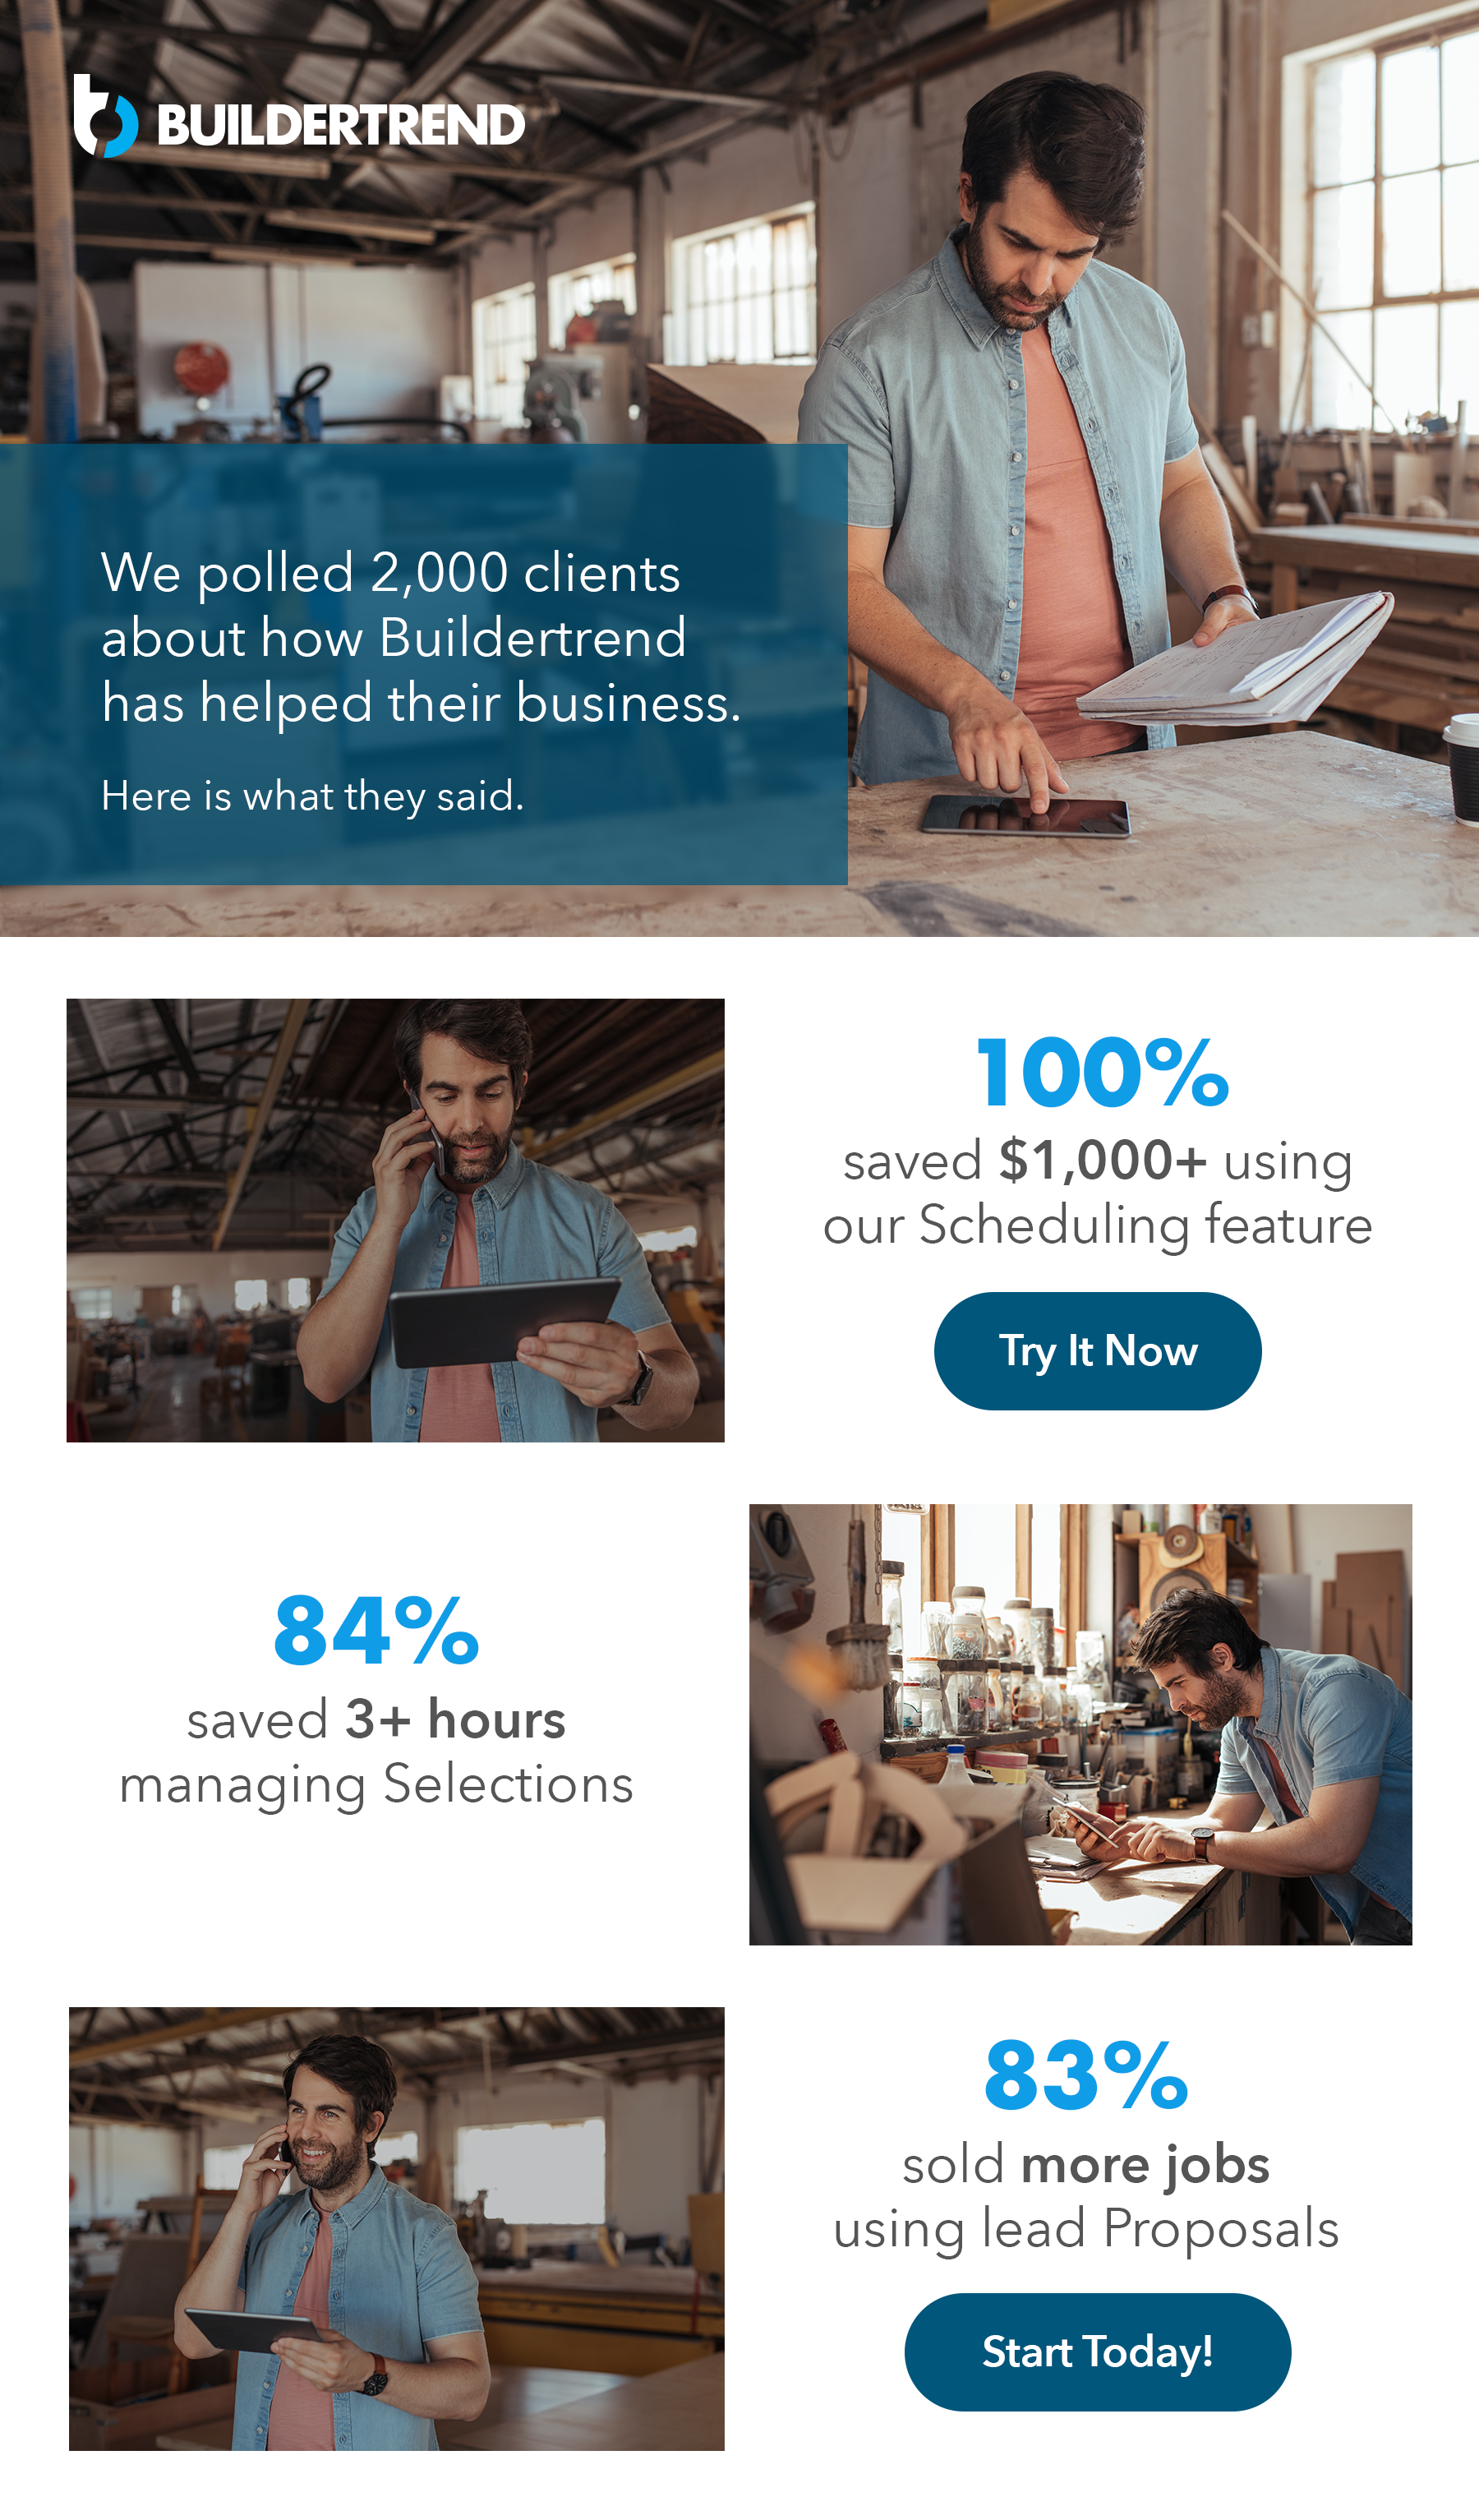 we polled 2000 clients about how buildertrend has help their business - here's what they said - schedule your demo today